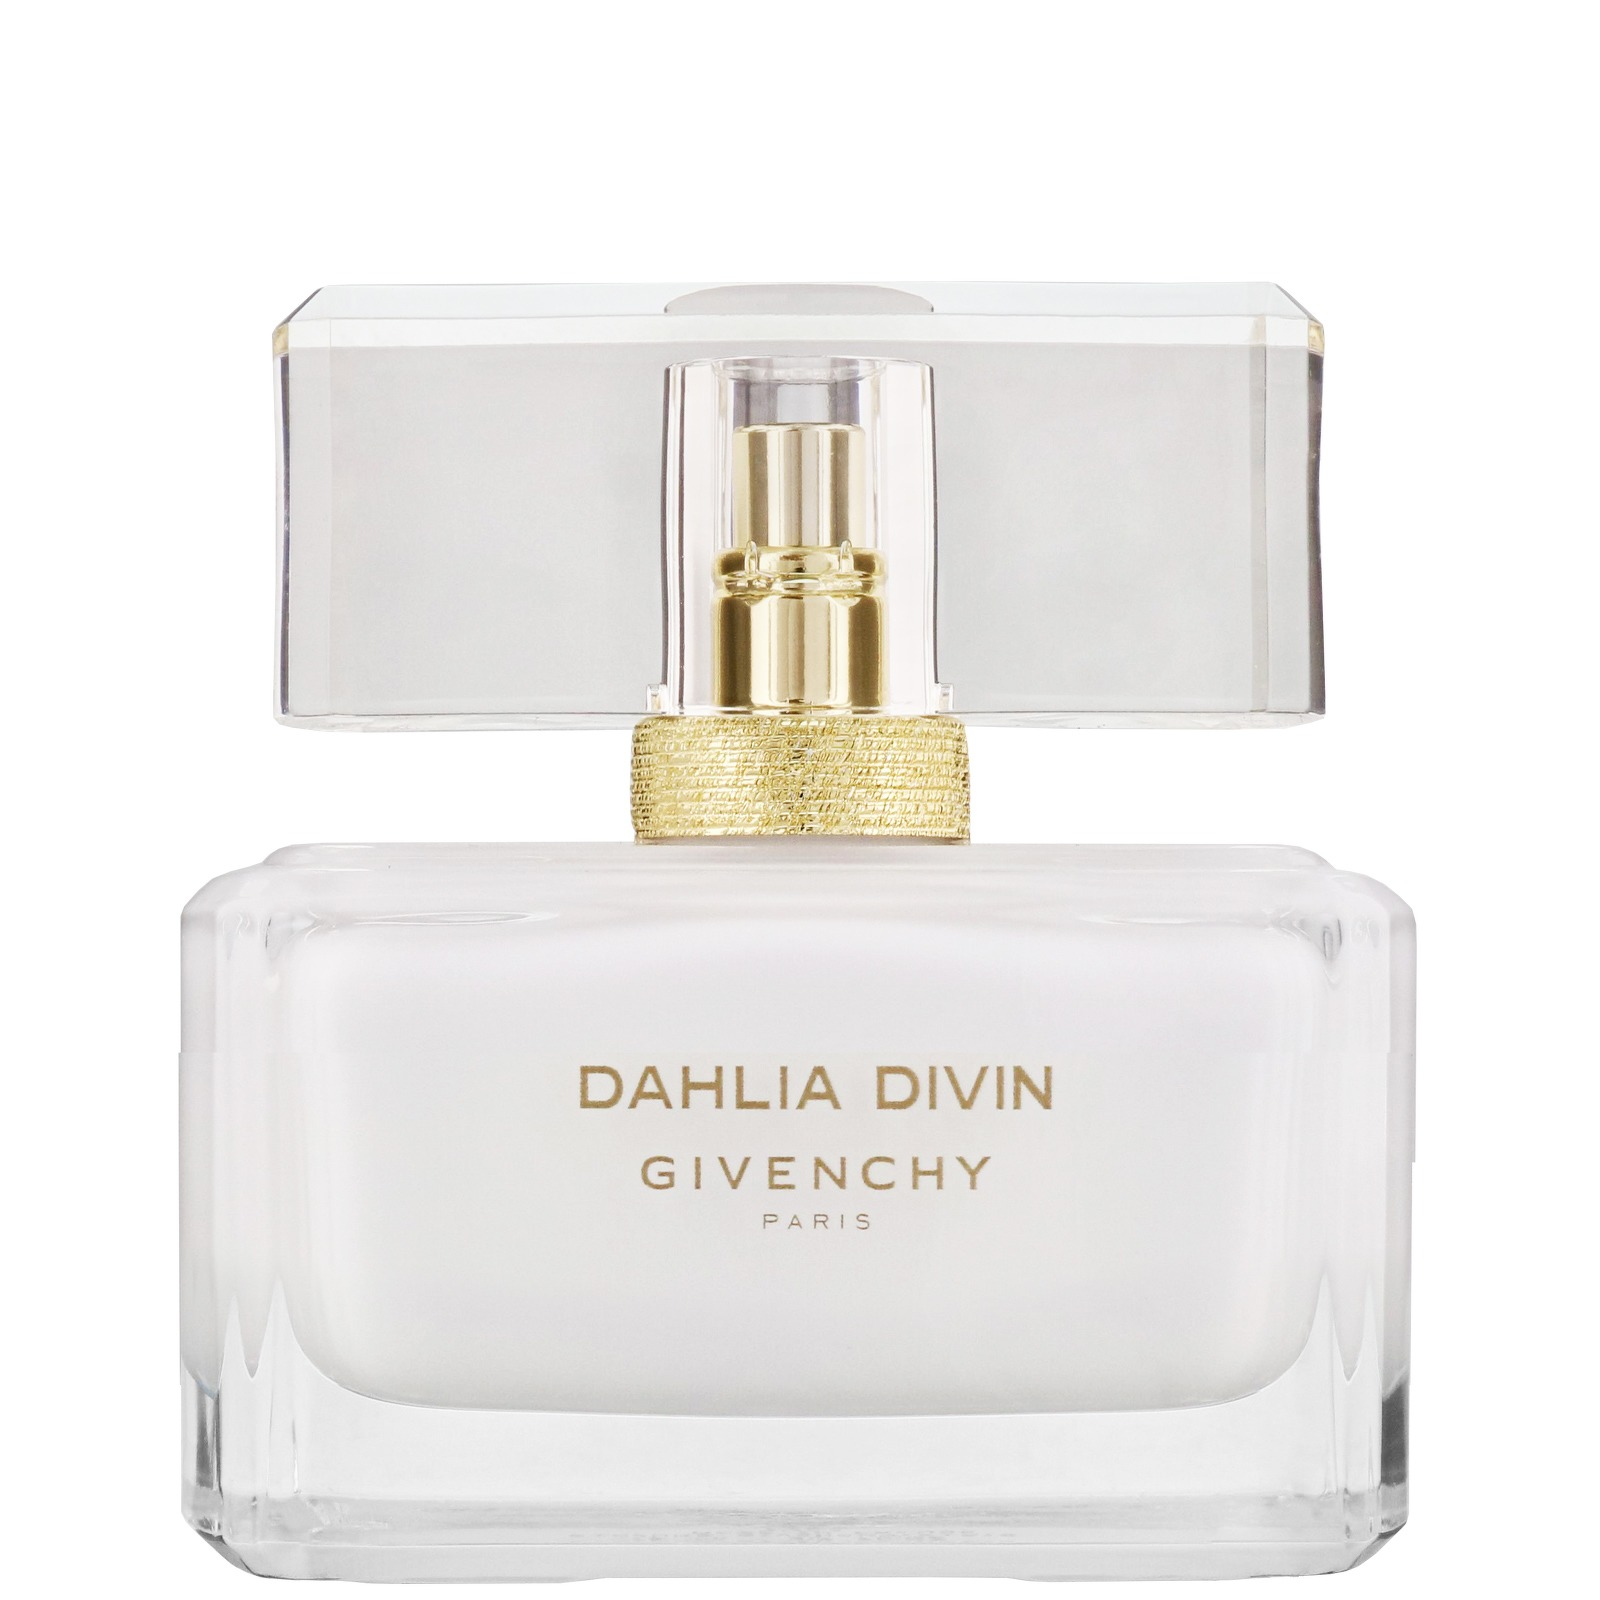 Givenchy Dahlia Divin Eau Initiale Eau de Toilette Spray 50ml